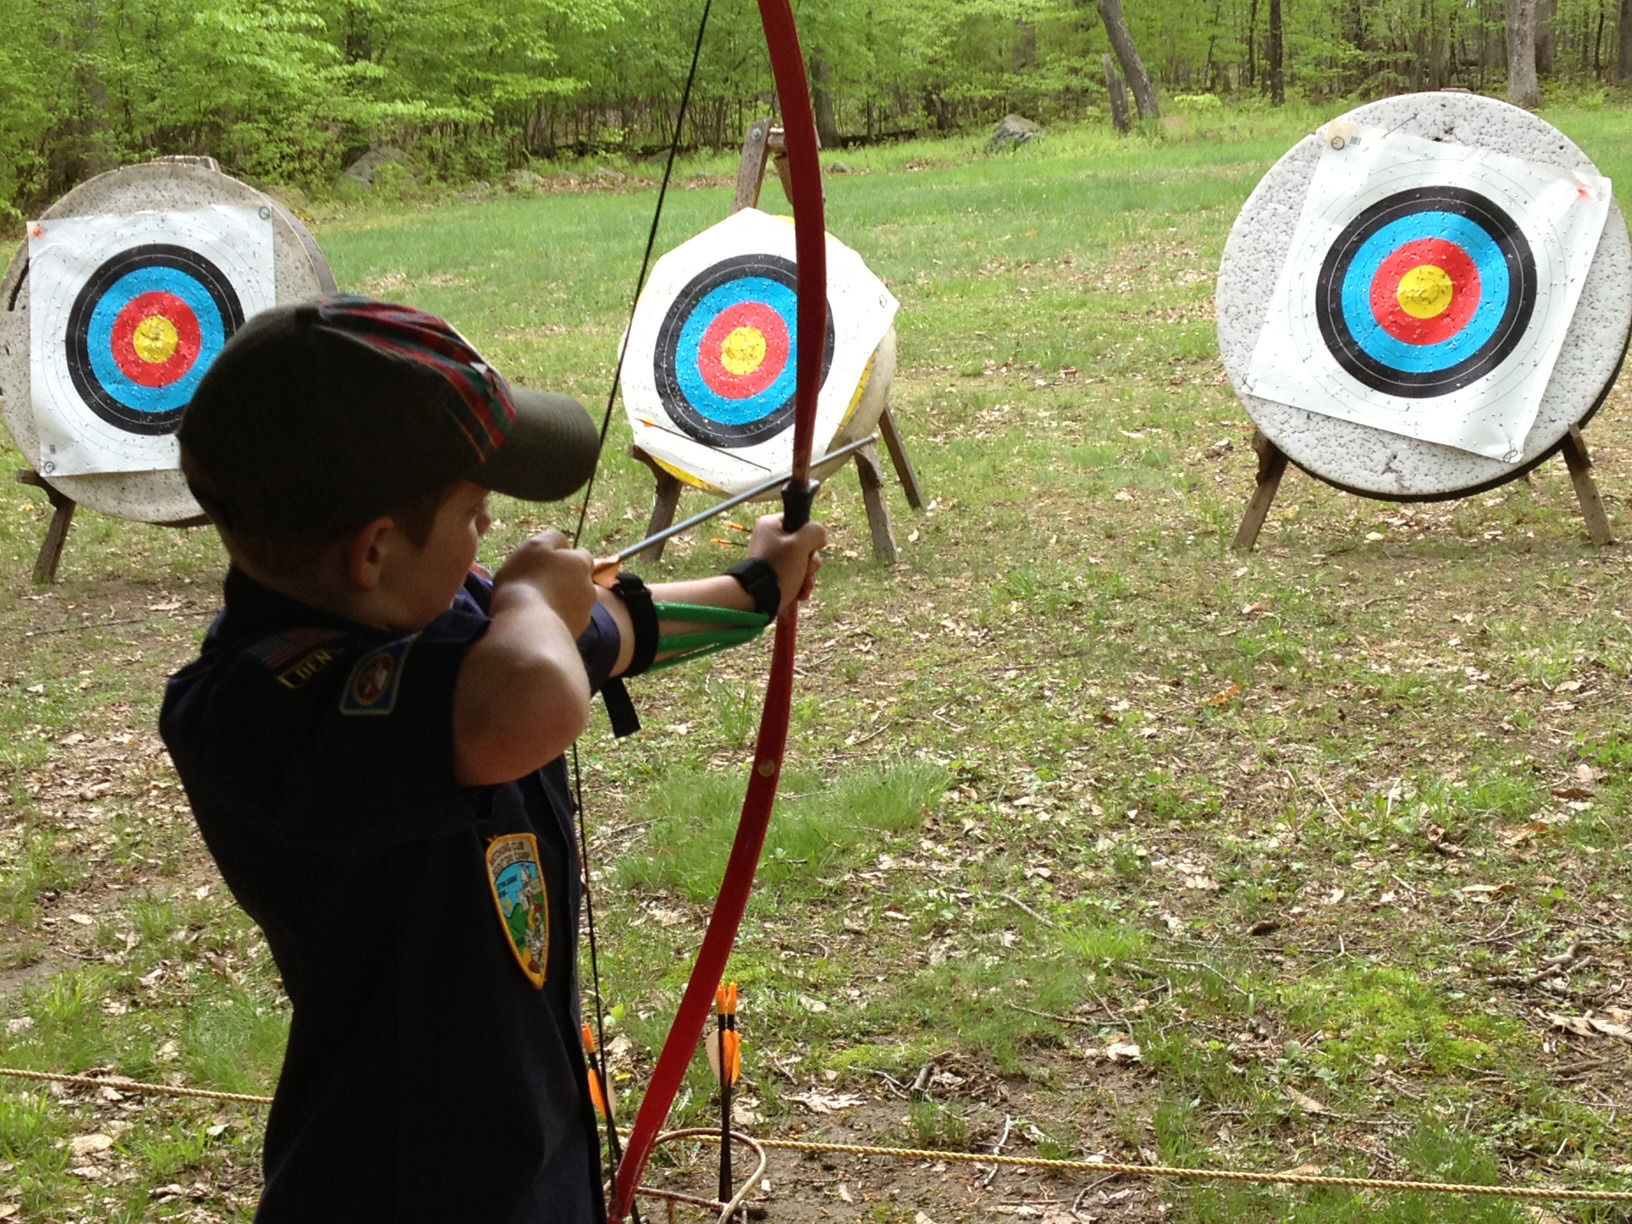 e823ec01c72c086e7a44_Camporee_-_Archery.jpg